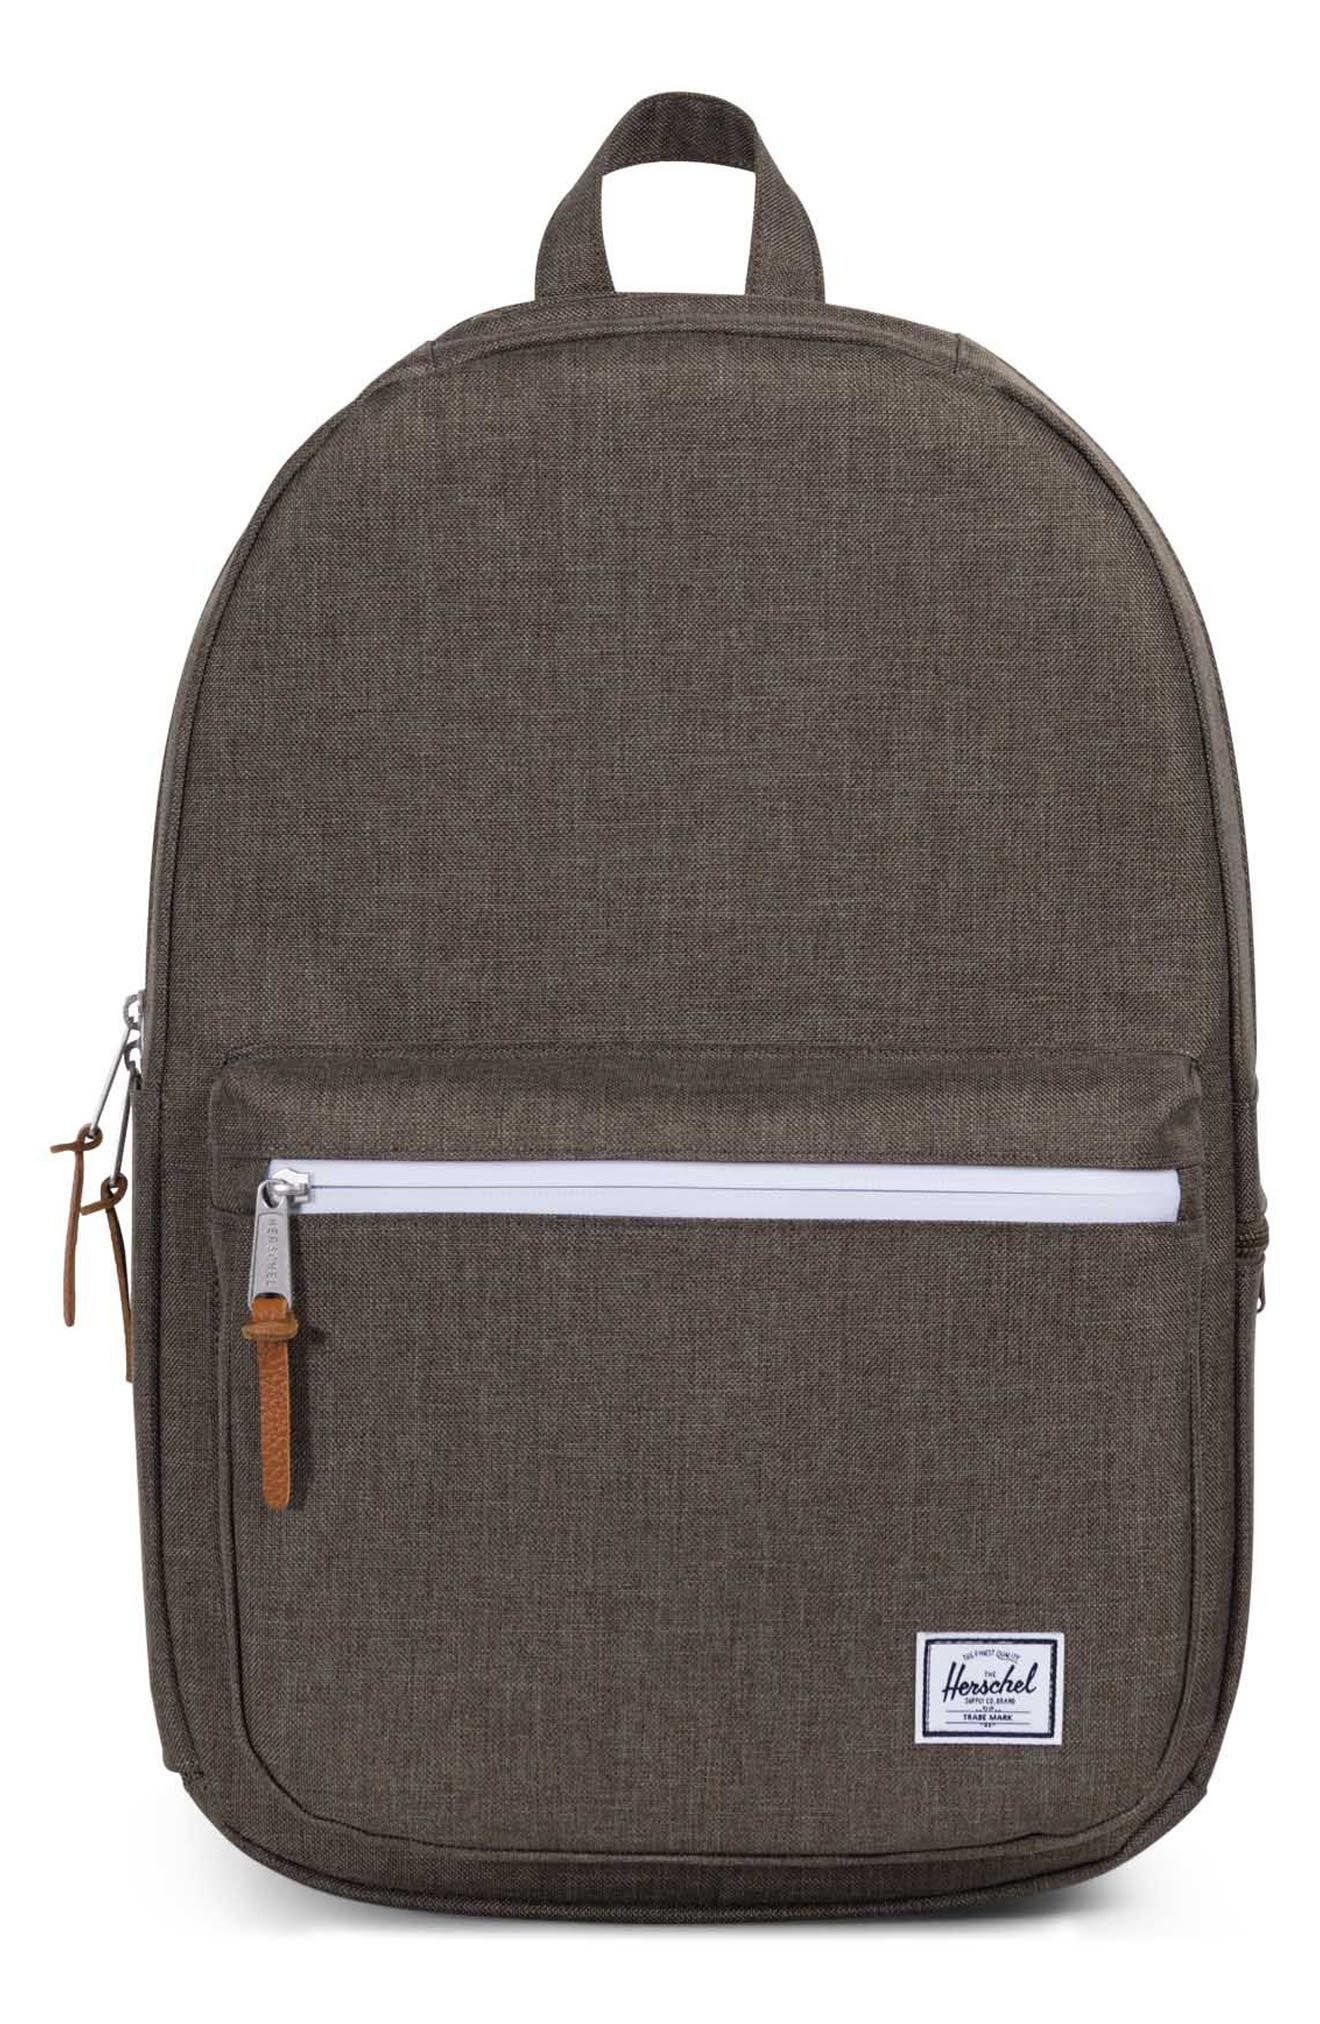 Harrison Backpack,                         Main,                         color, Canteen Crosshatch